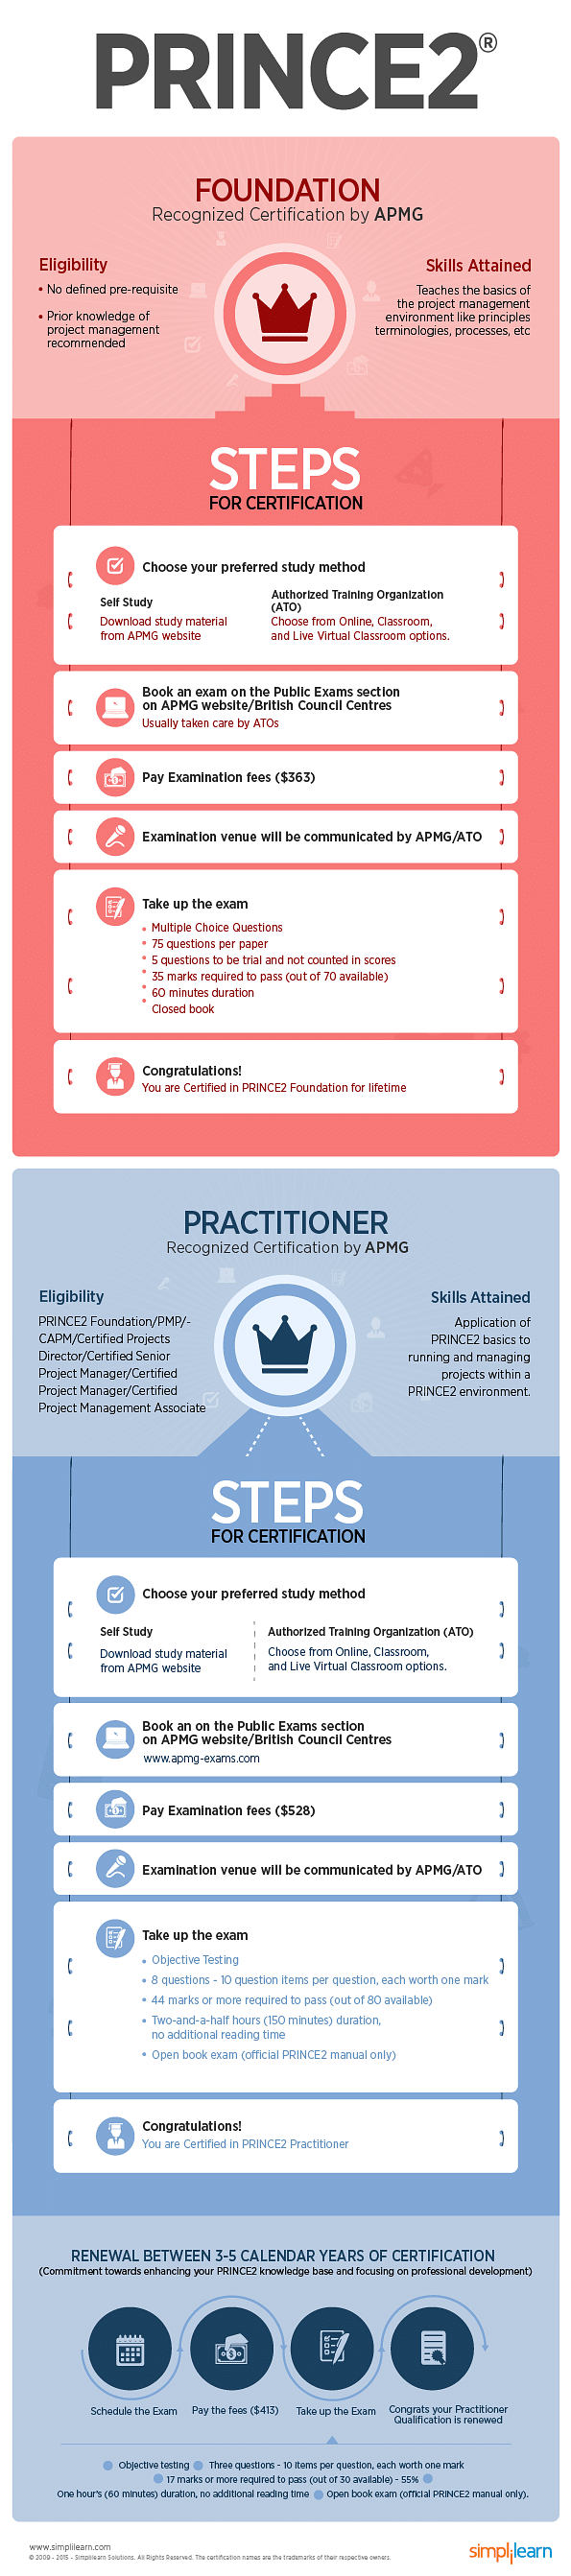 Prince2 Foundation Practitioner Certification Eligibility And